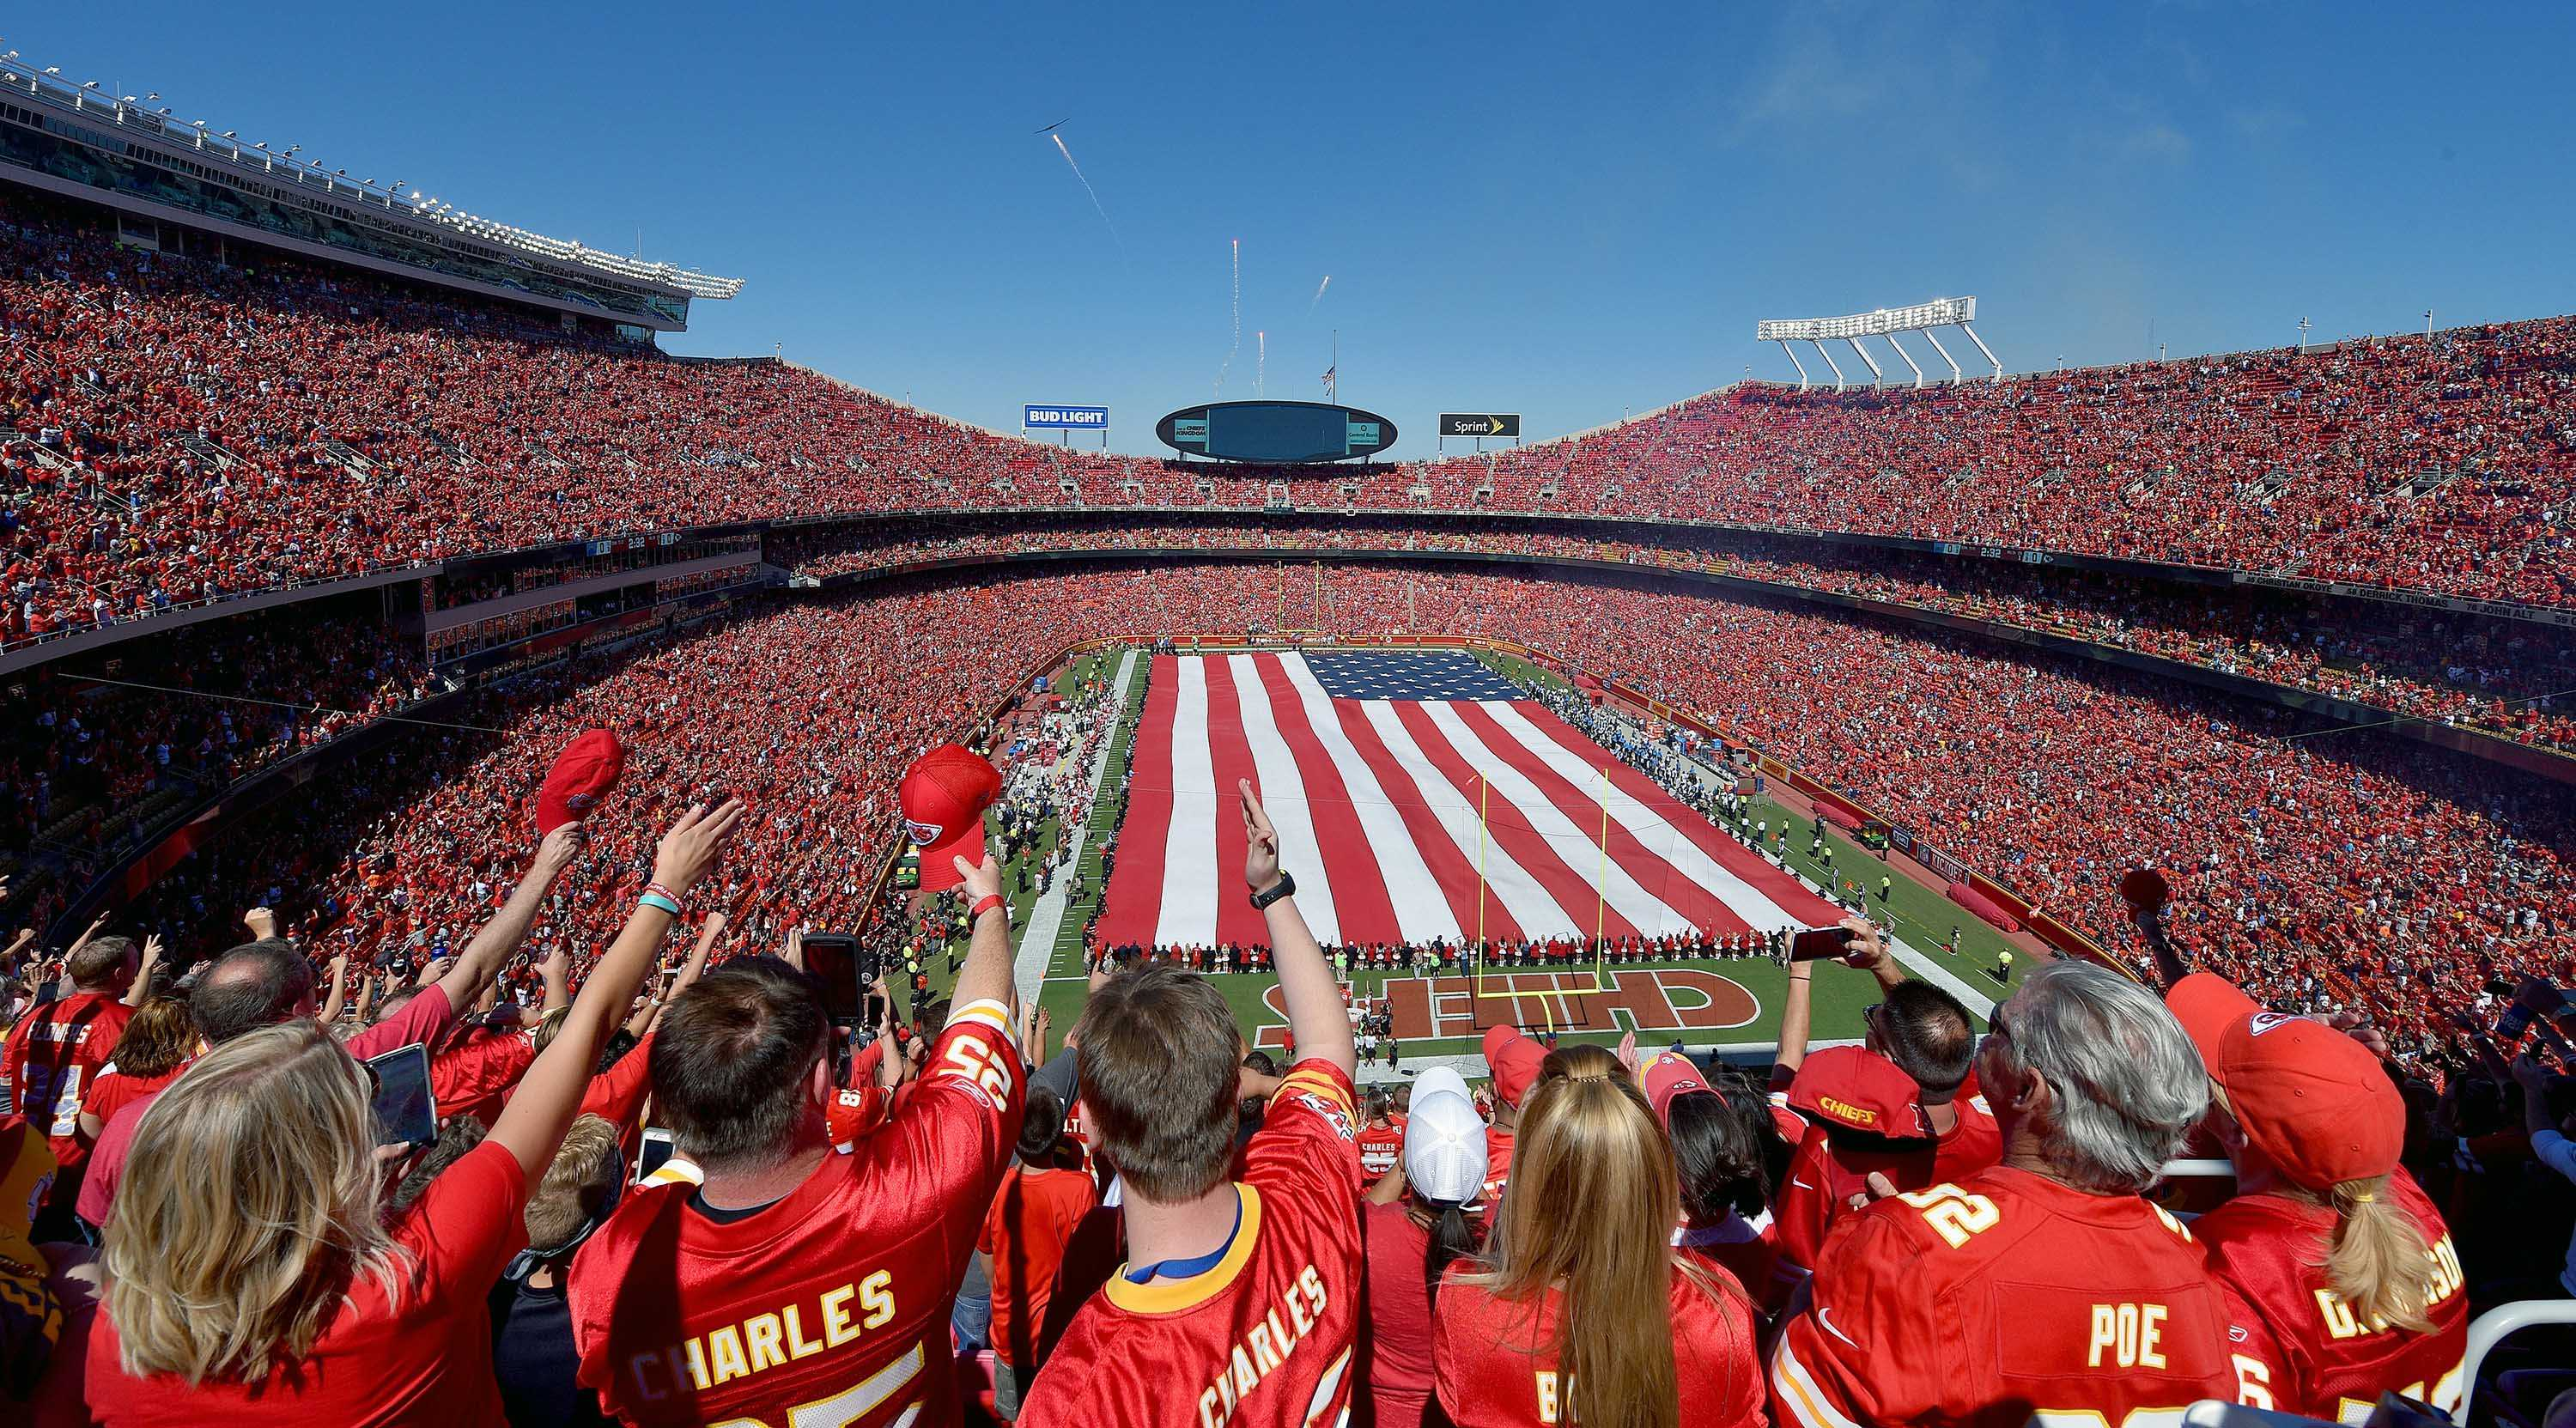 Kansas City Chiefs fans salute at the end of the National Anthem as a B2 stealth bomber and fireworks fly overhead before a football game against the San Diego Chargers on Sunday, September 11, 2016 at Arrowhead Stadium in Kansas City, Missouri (John Sleezer/Kansas City Star/TNS)